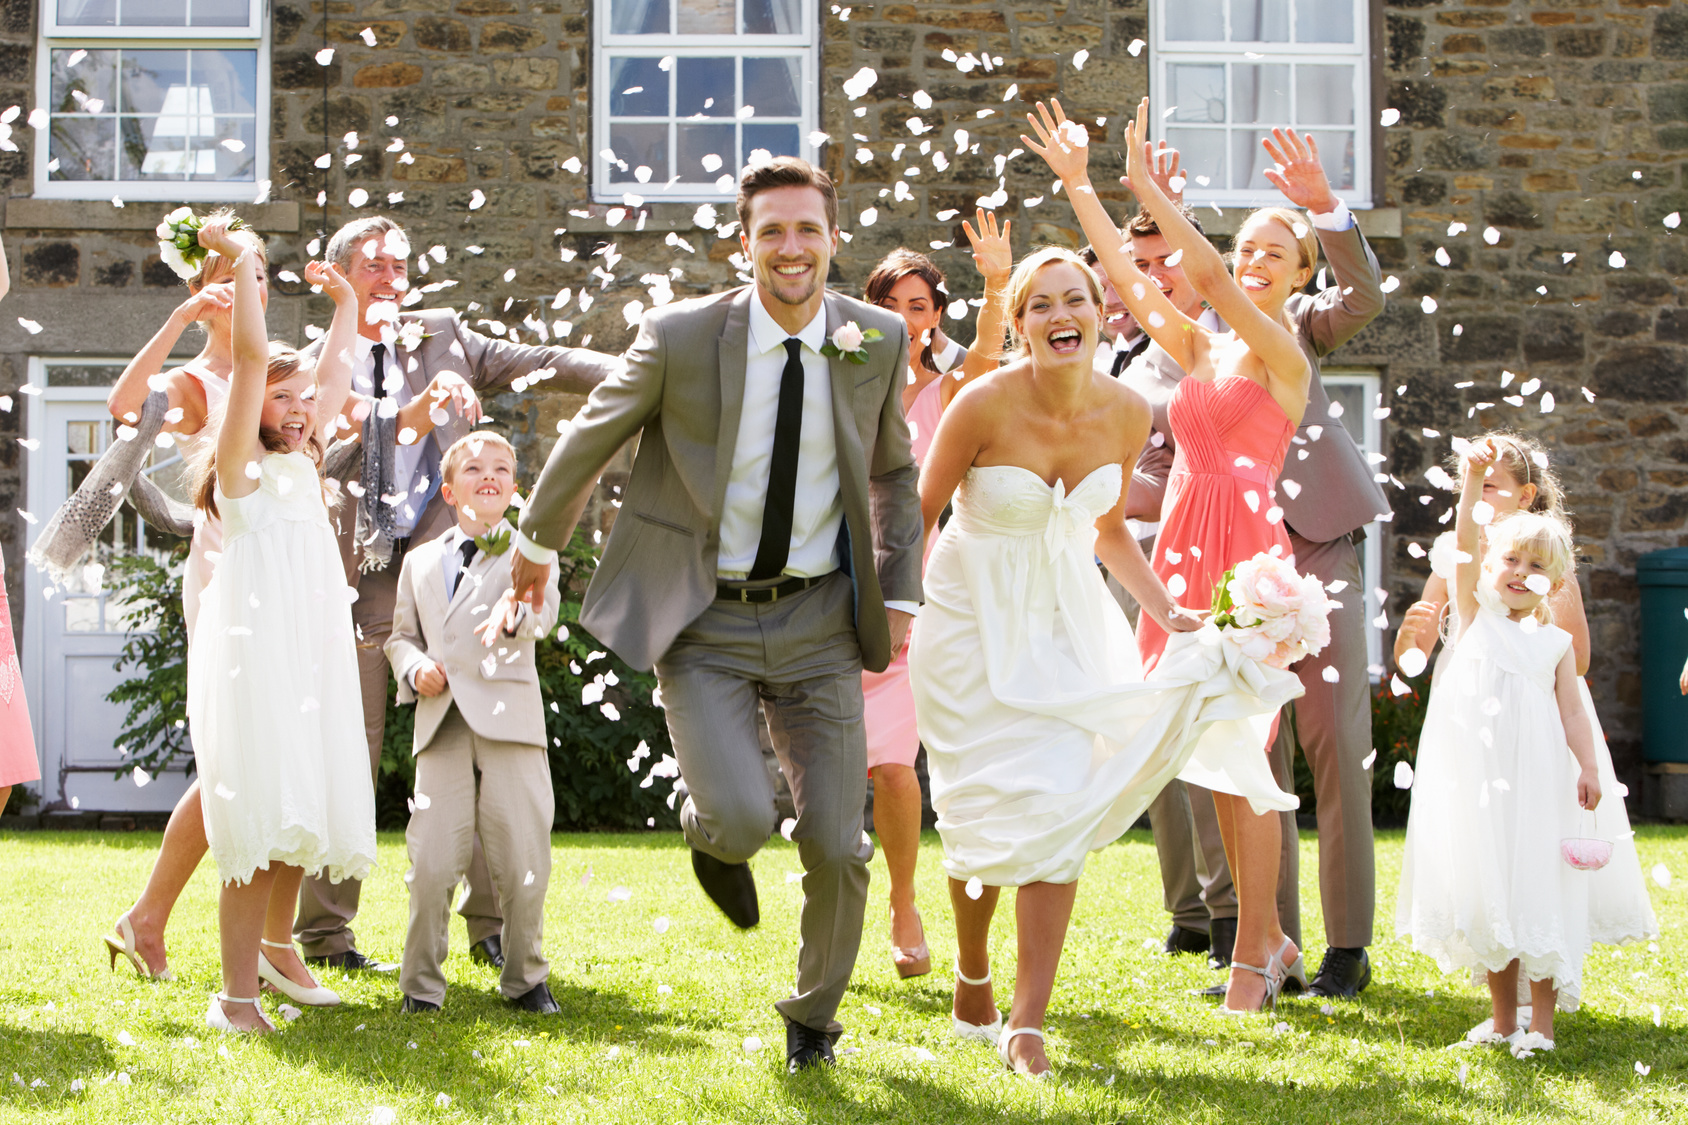 Guests Throwing Confetti Over Bride And Groom Wedding Insurance Coverage